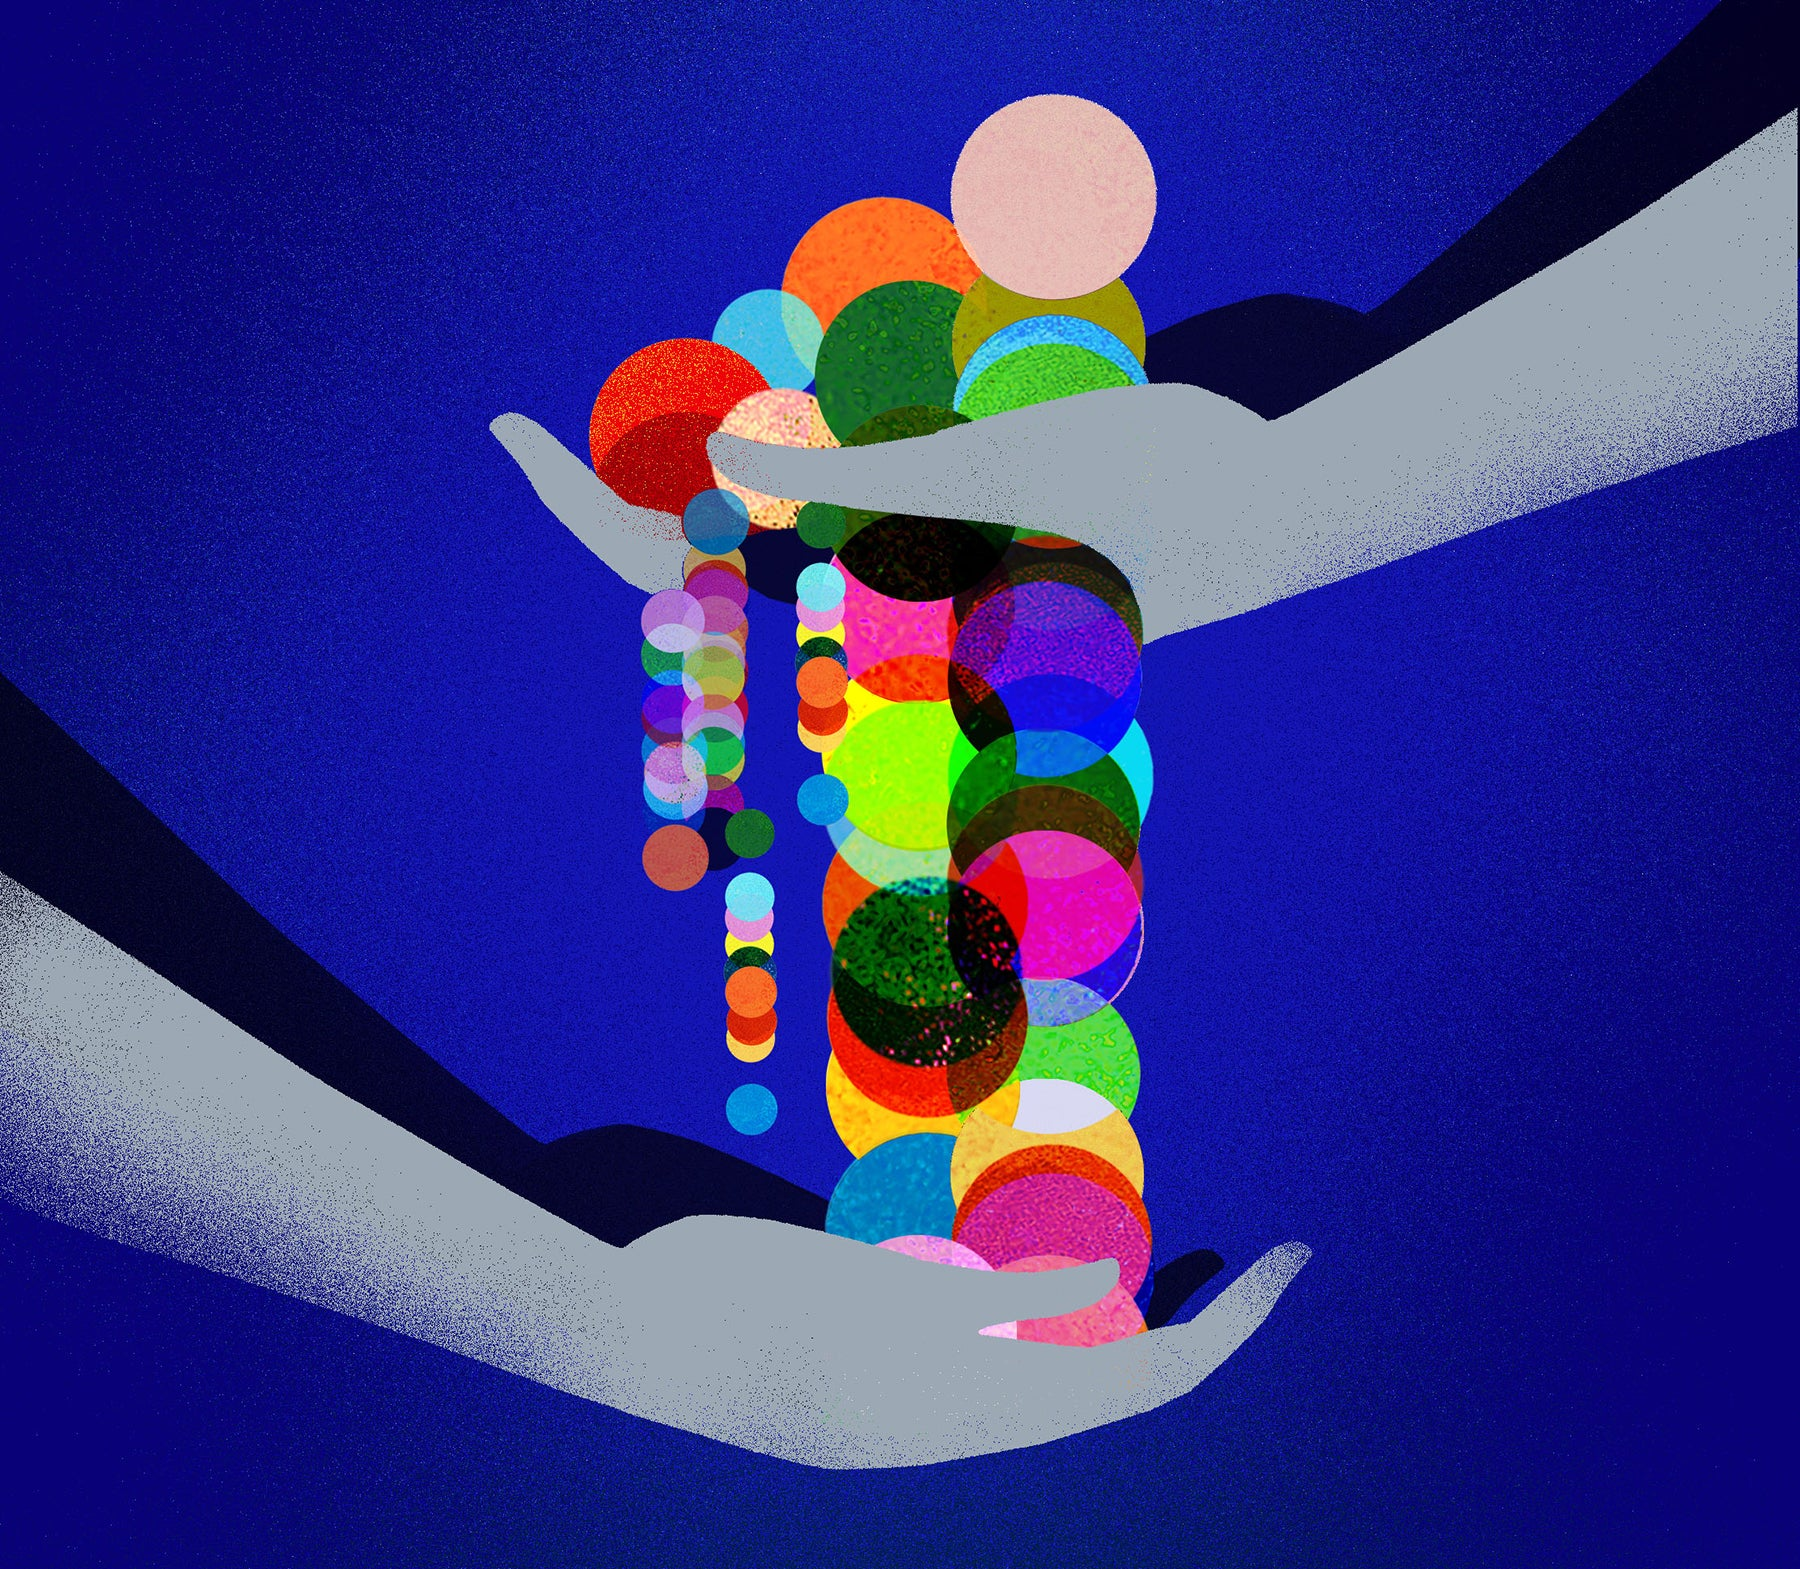 An illustration of two hands holding multiple colored shapes, indicating ownership in the creator economy